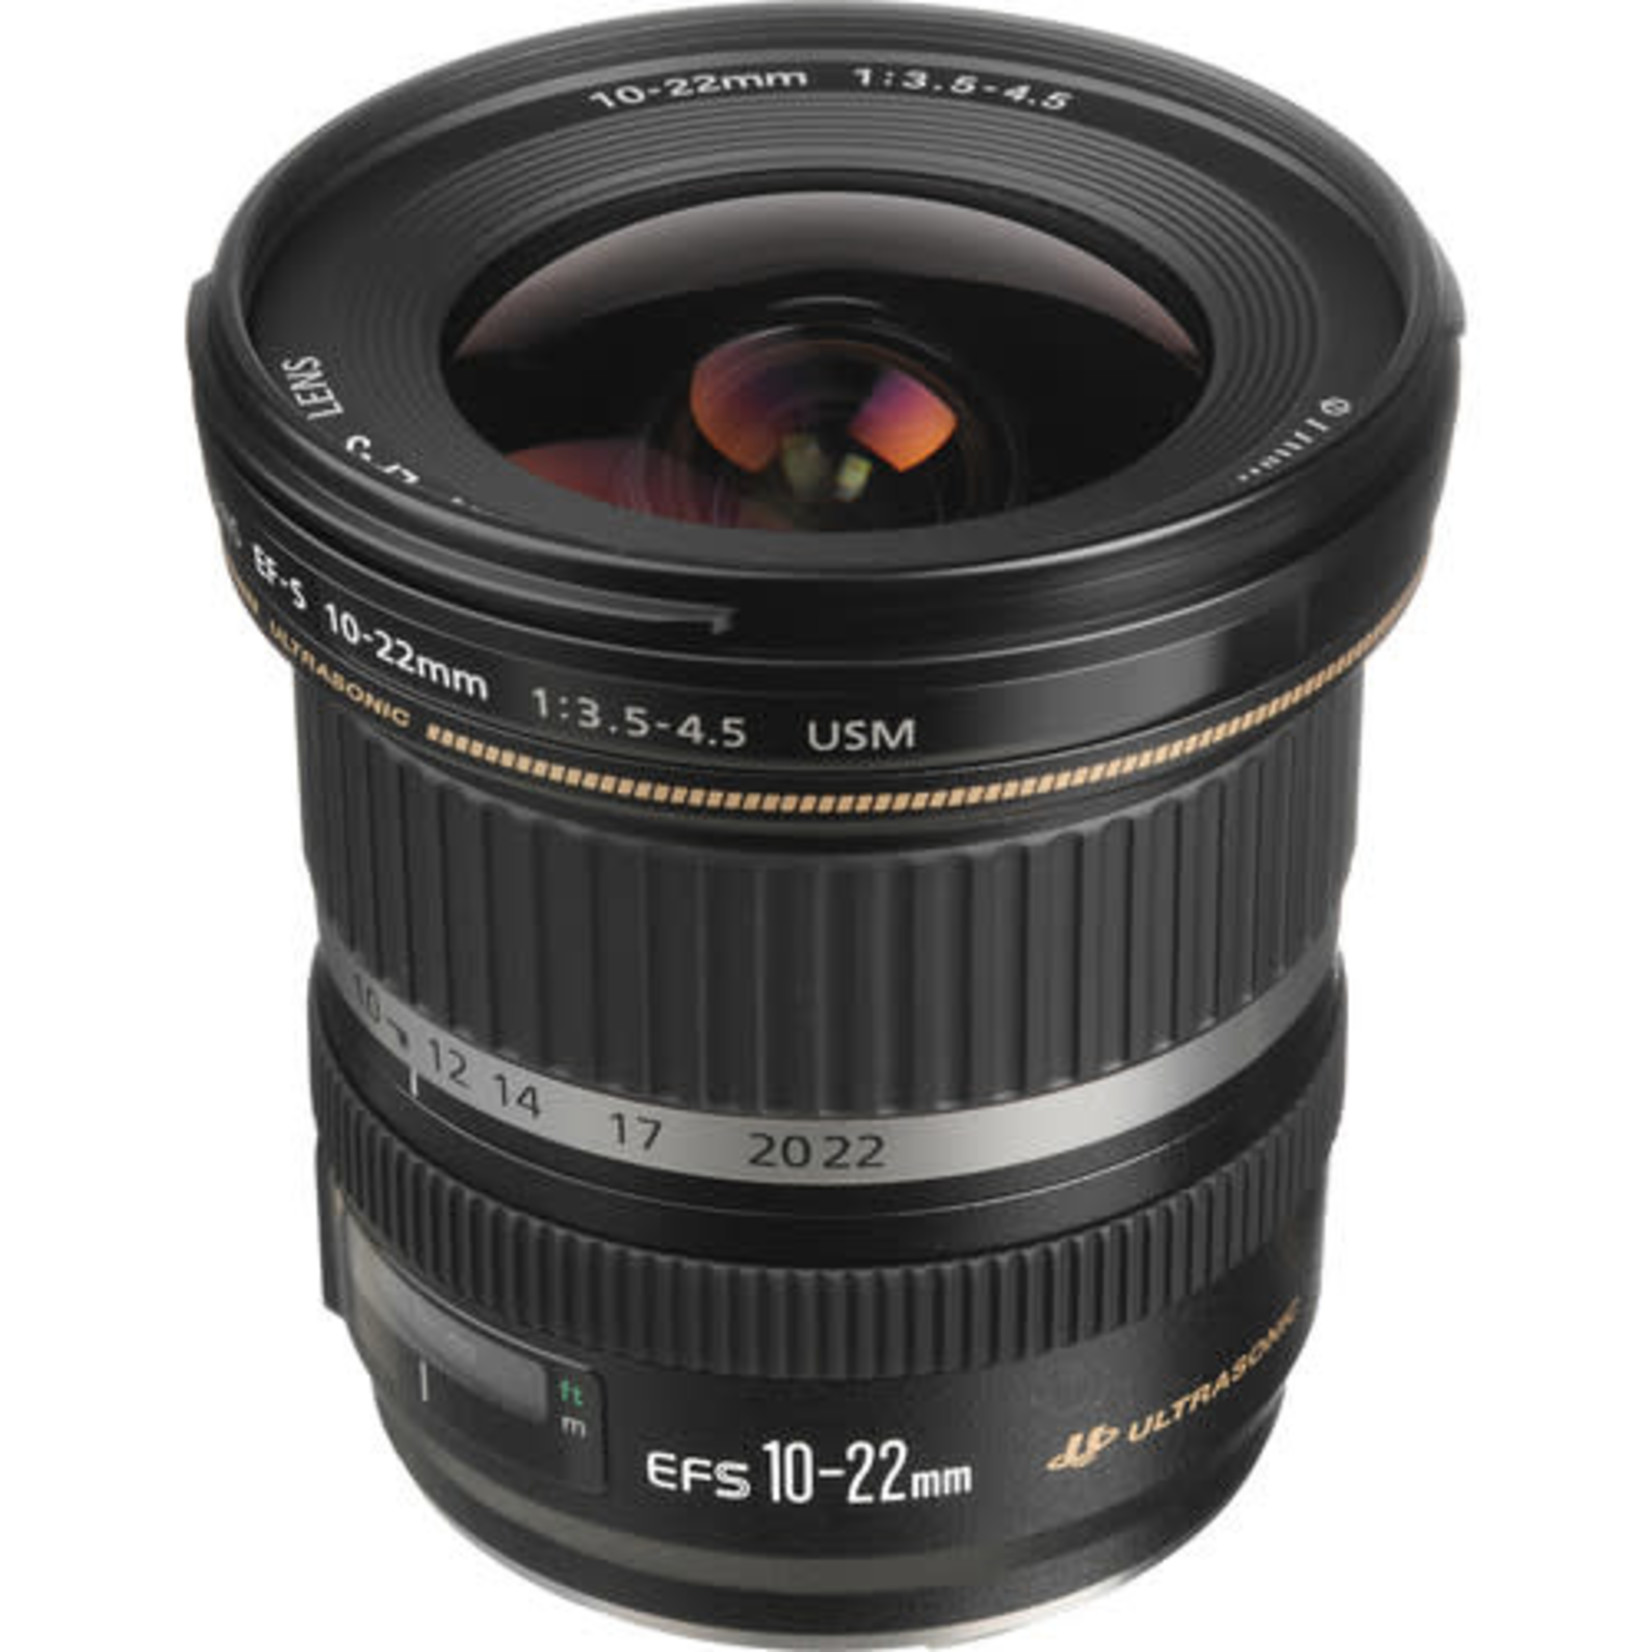 Canon Canon EF-S 10-22mm f/3.5-4.5 USM Lens